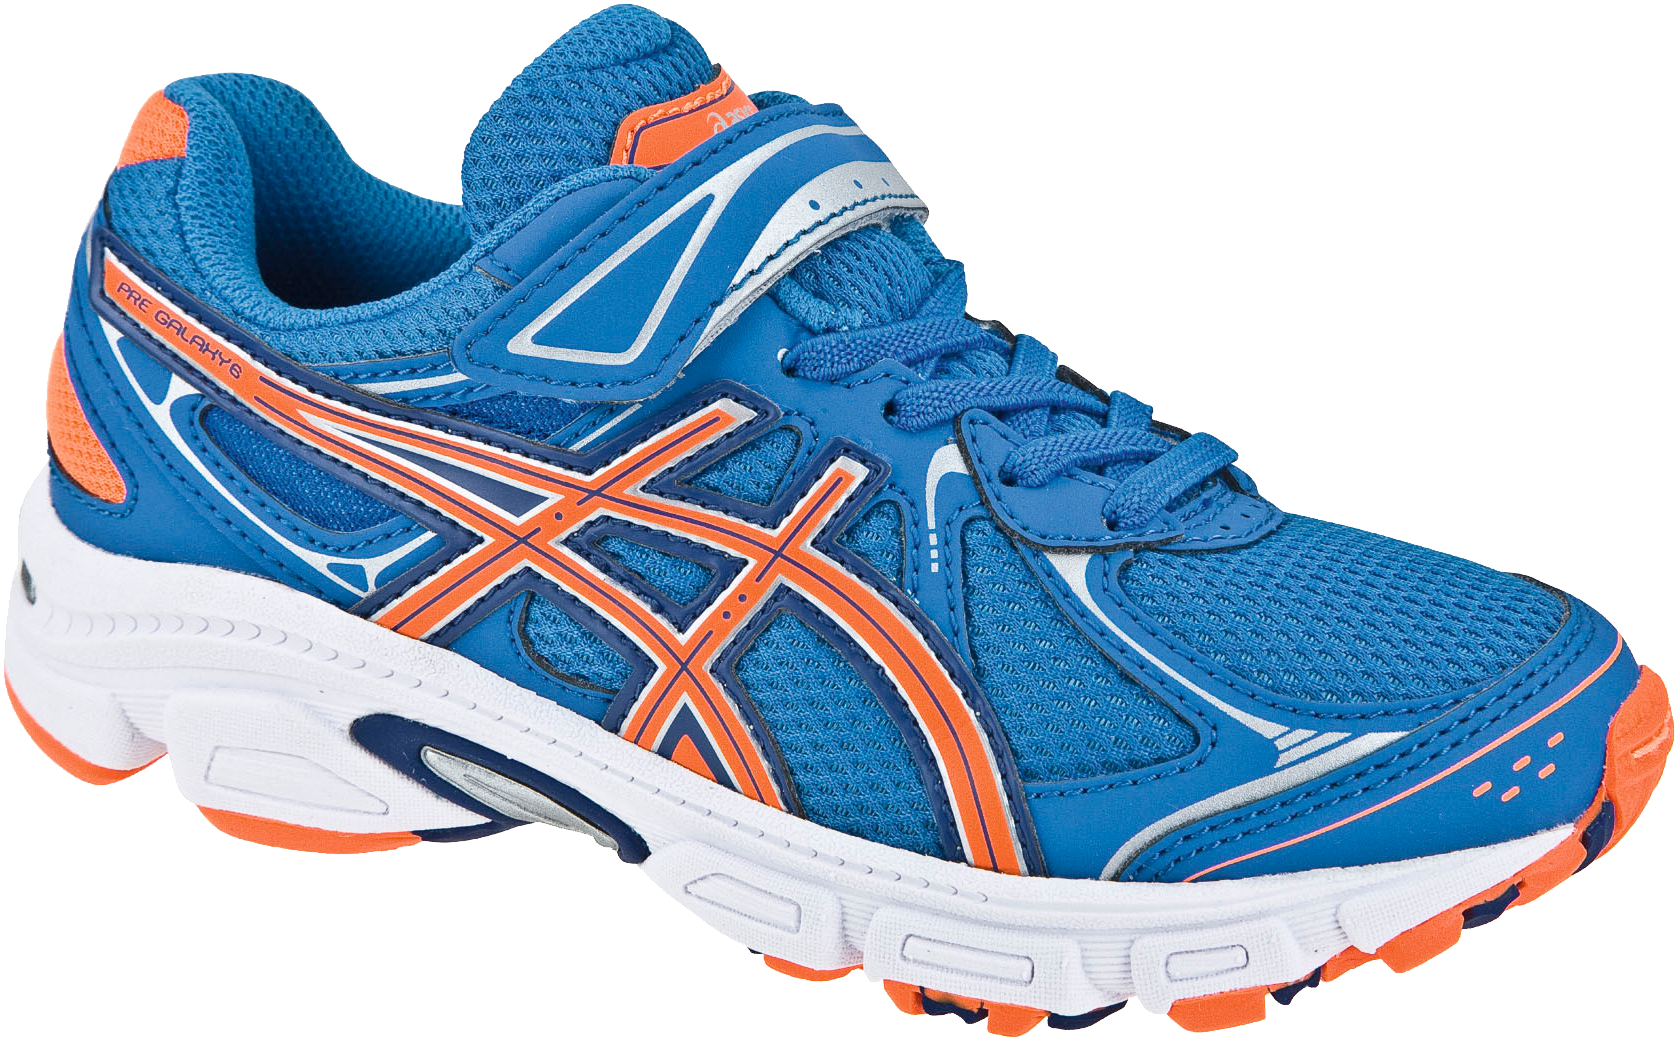 Running shoes clipart png. Photos transparentpng image information